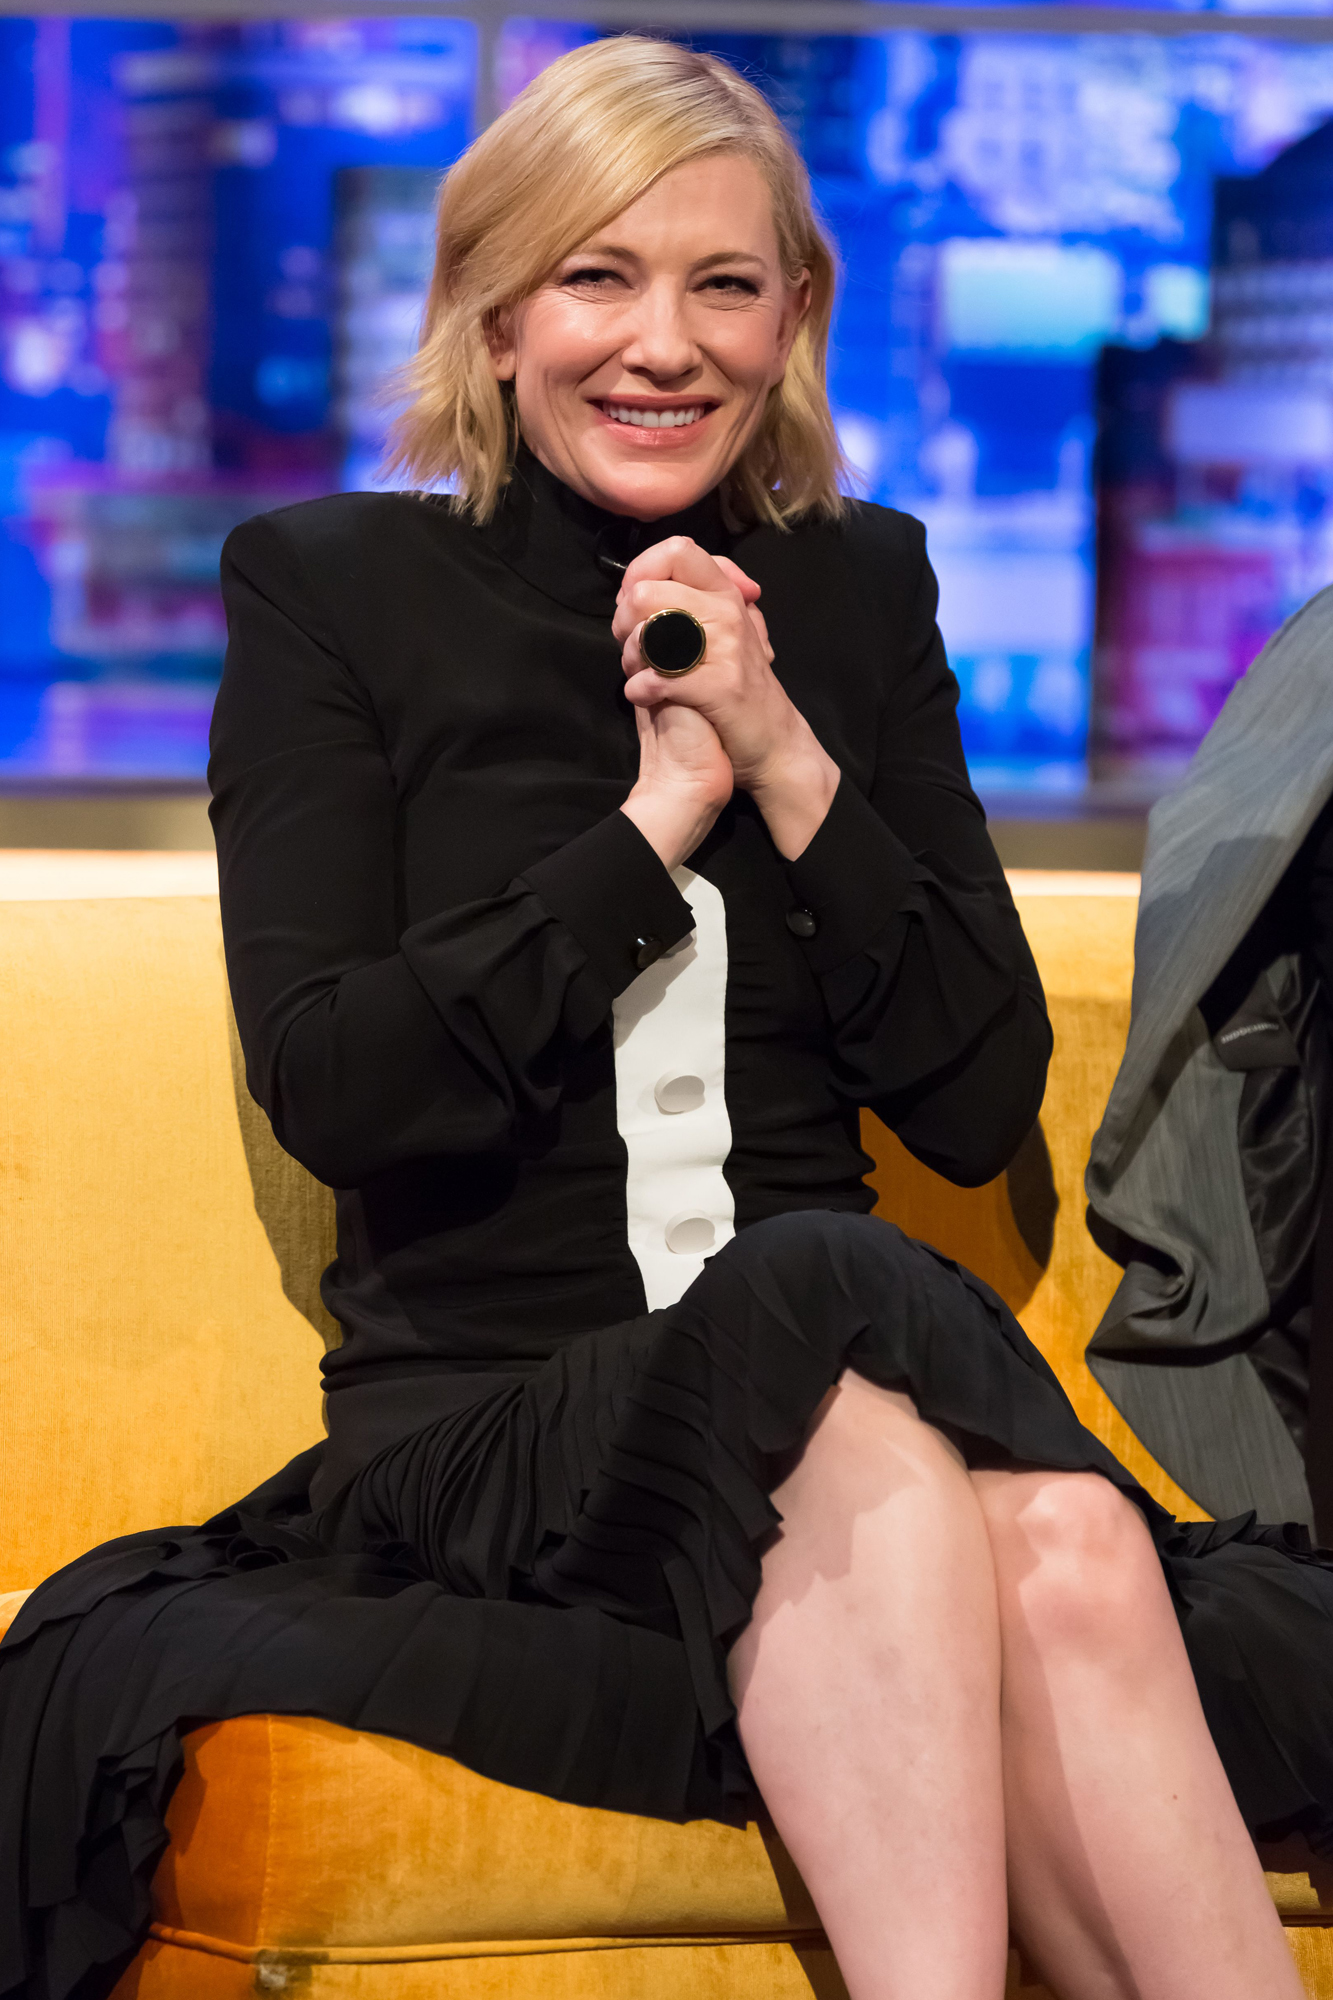 'The Jonathan Ross Show', TV show, Series 13, Episode 2, London, UK - 08 Sep 2018